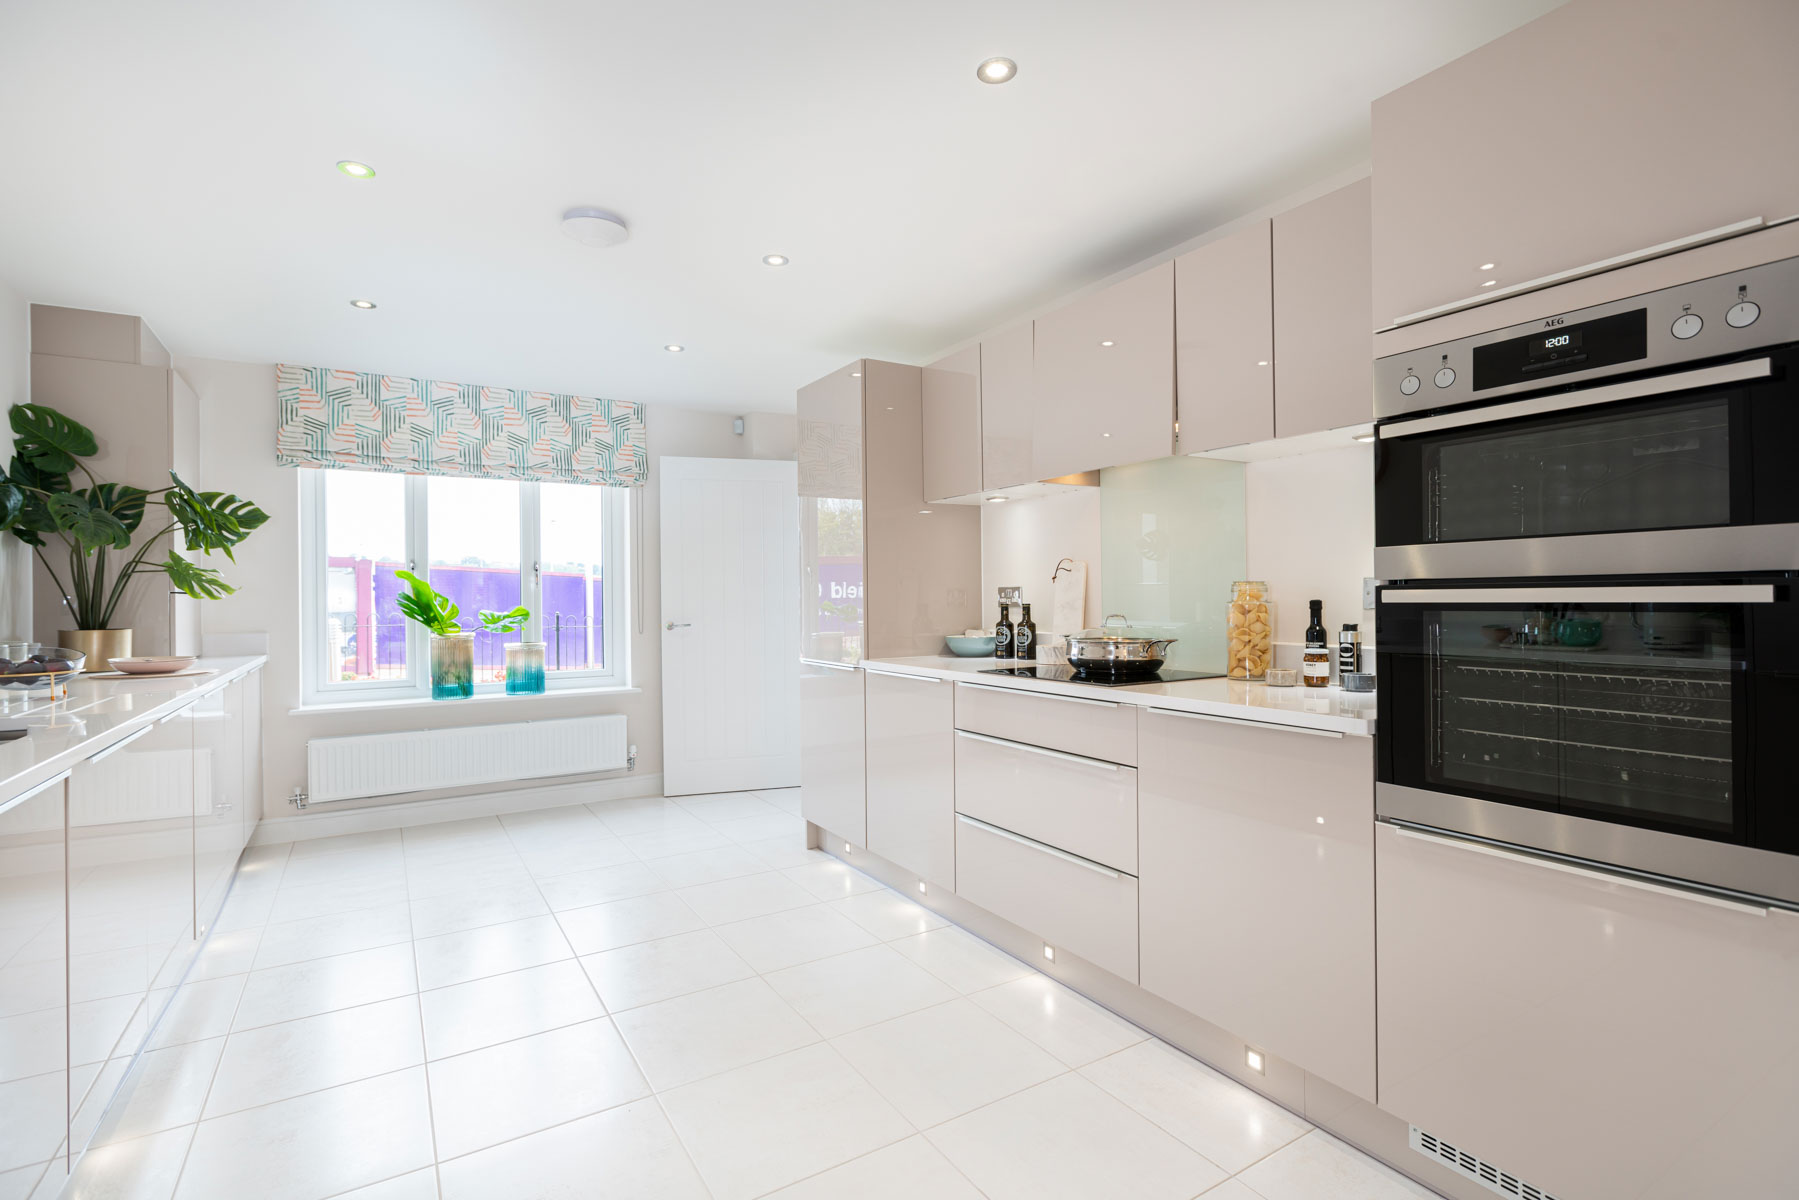 Taylor Wimpey - Mayfield Gardens - Marford kitchen 3